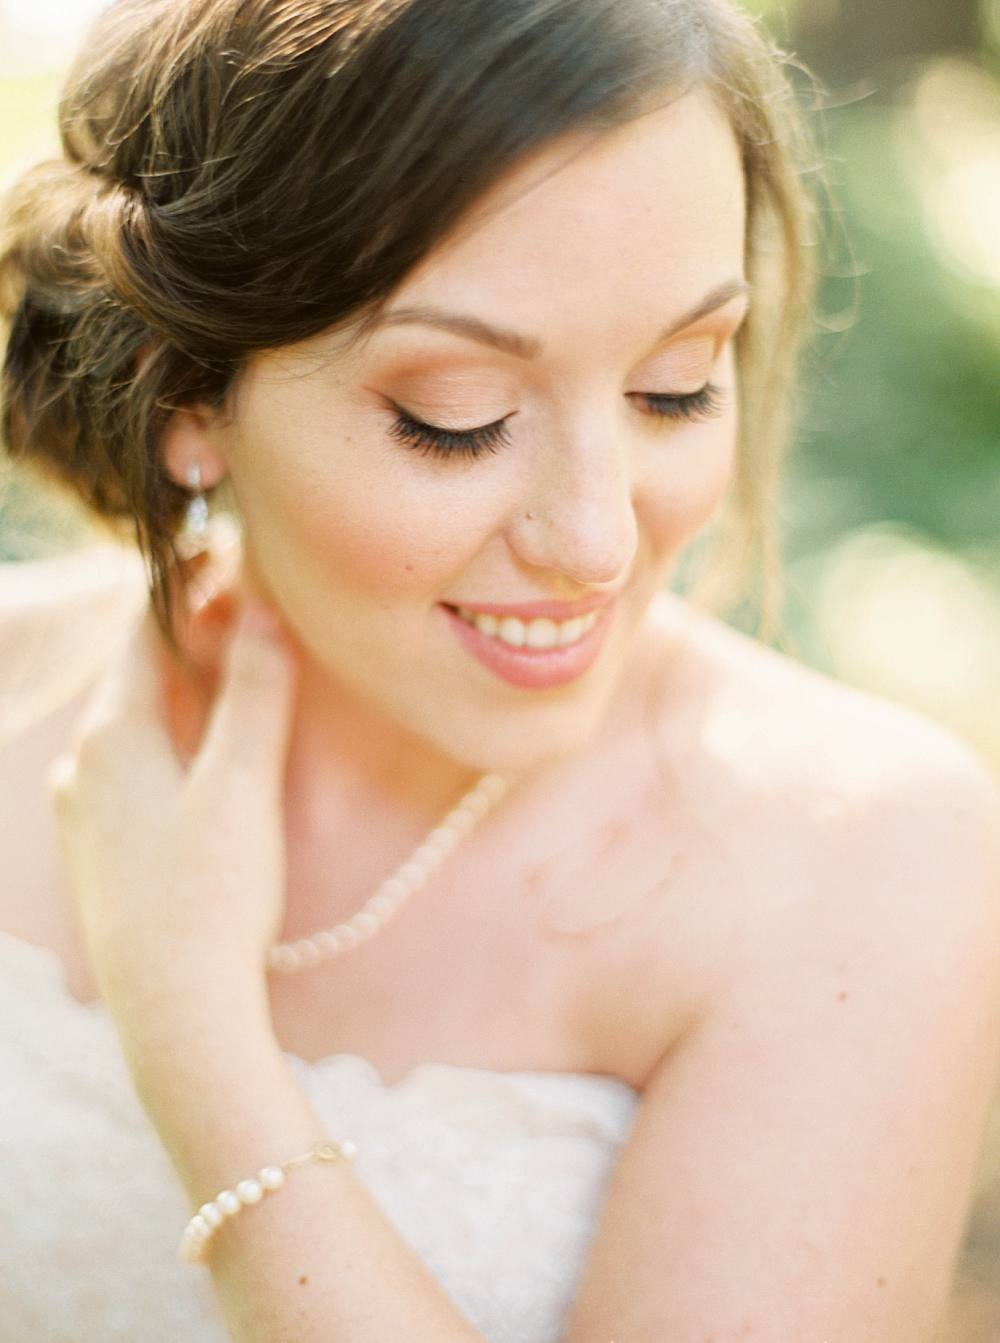 Close-up of bride smiling in beautiful golden light.